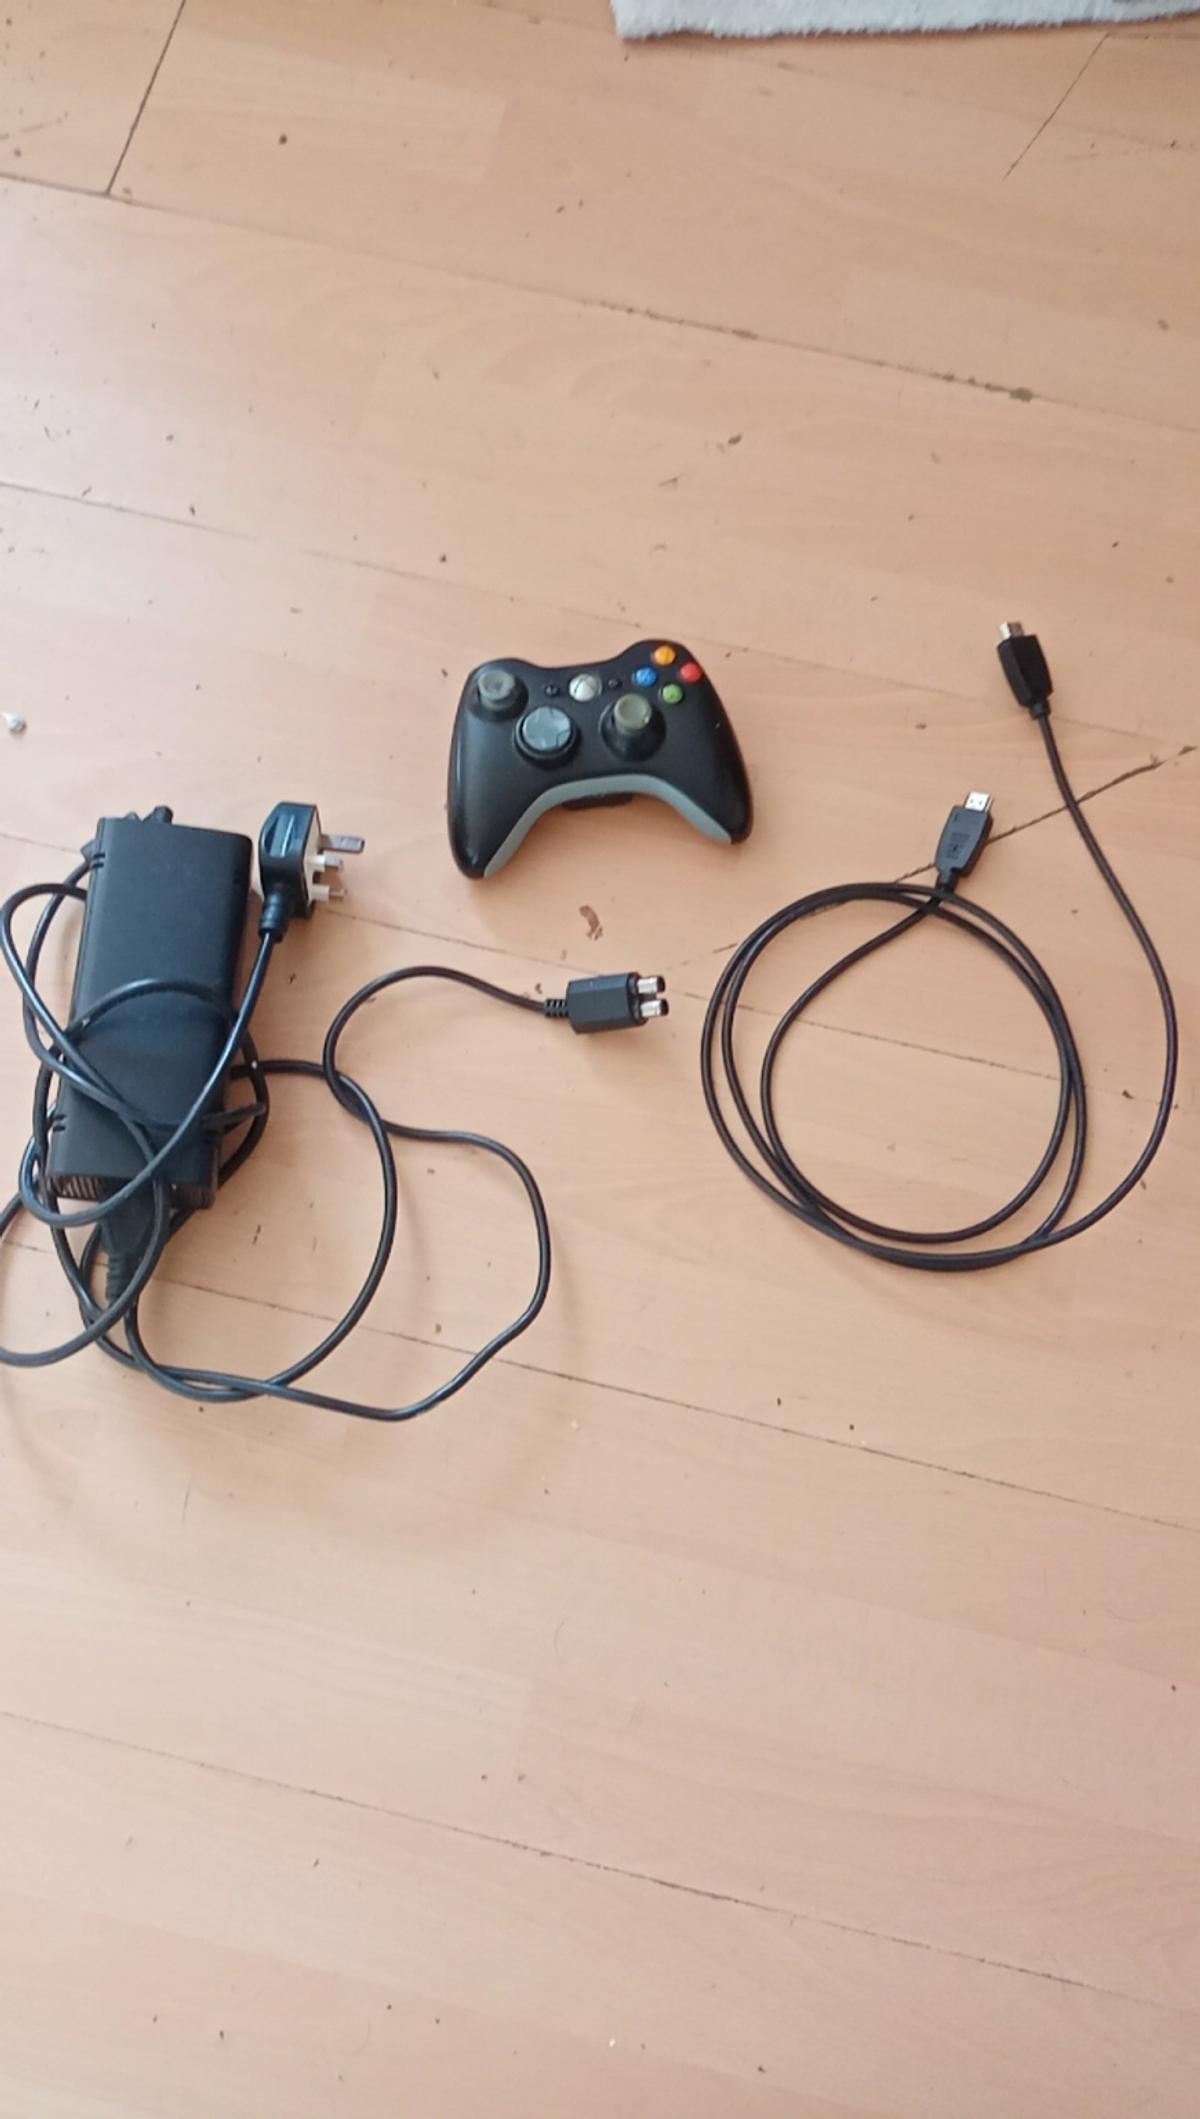 Xbox 360 4gig all works comes with hdmi cable power pack and controller need gone aspa collection only Swanley quick sale needed has I no longer need it